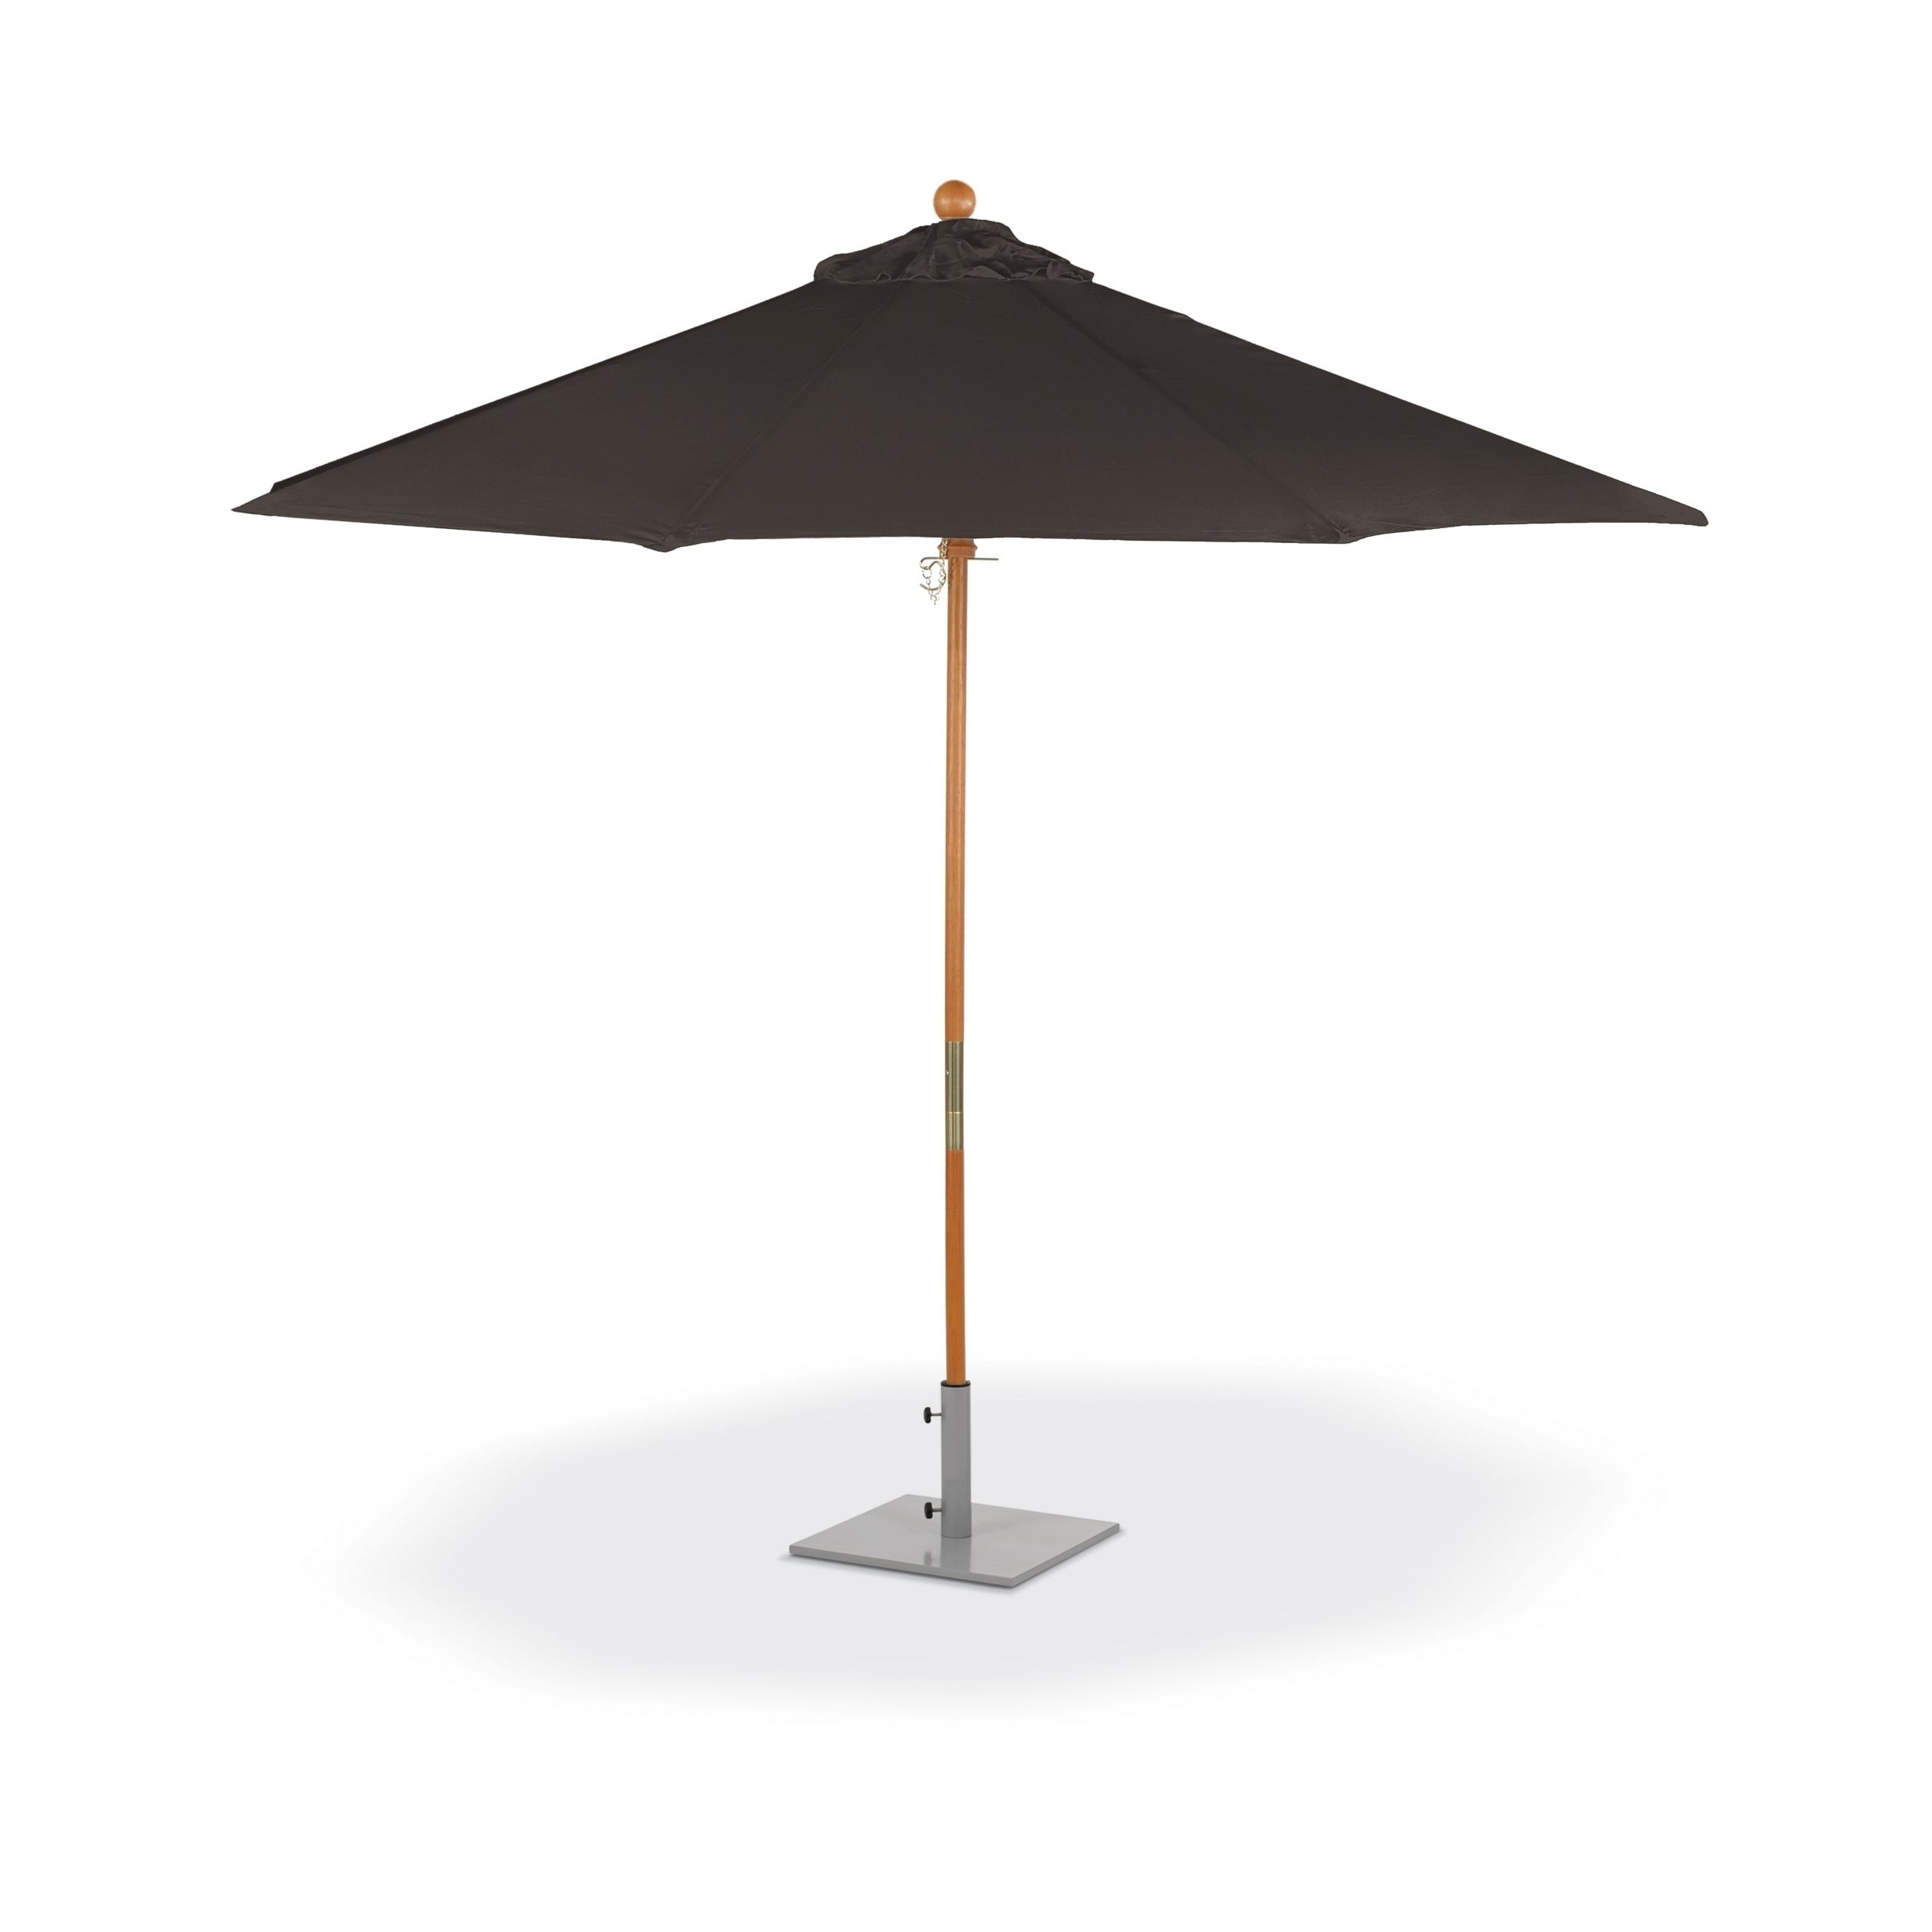 Oxford Garden 9 Feet Octagon Black Sunbrella Fabric Shade Market Umbrella With Solid Tropical Hardwood Frame Pertaining To Most Up To Date Solid Market Umbrellas (View 13 of 20)